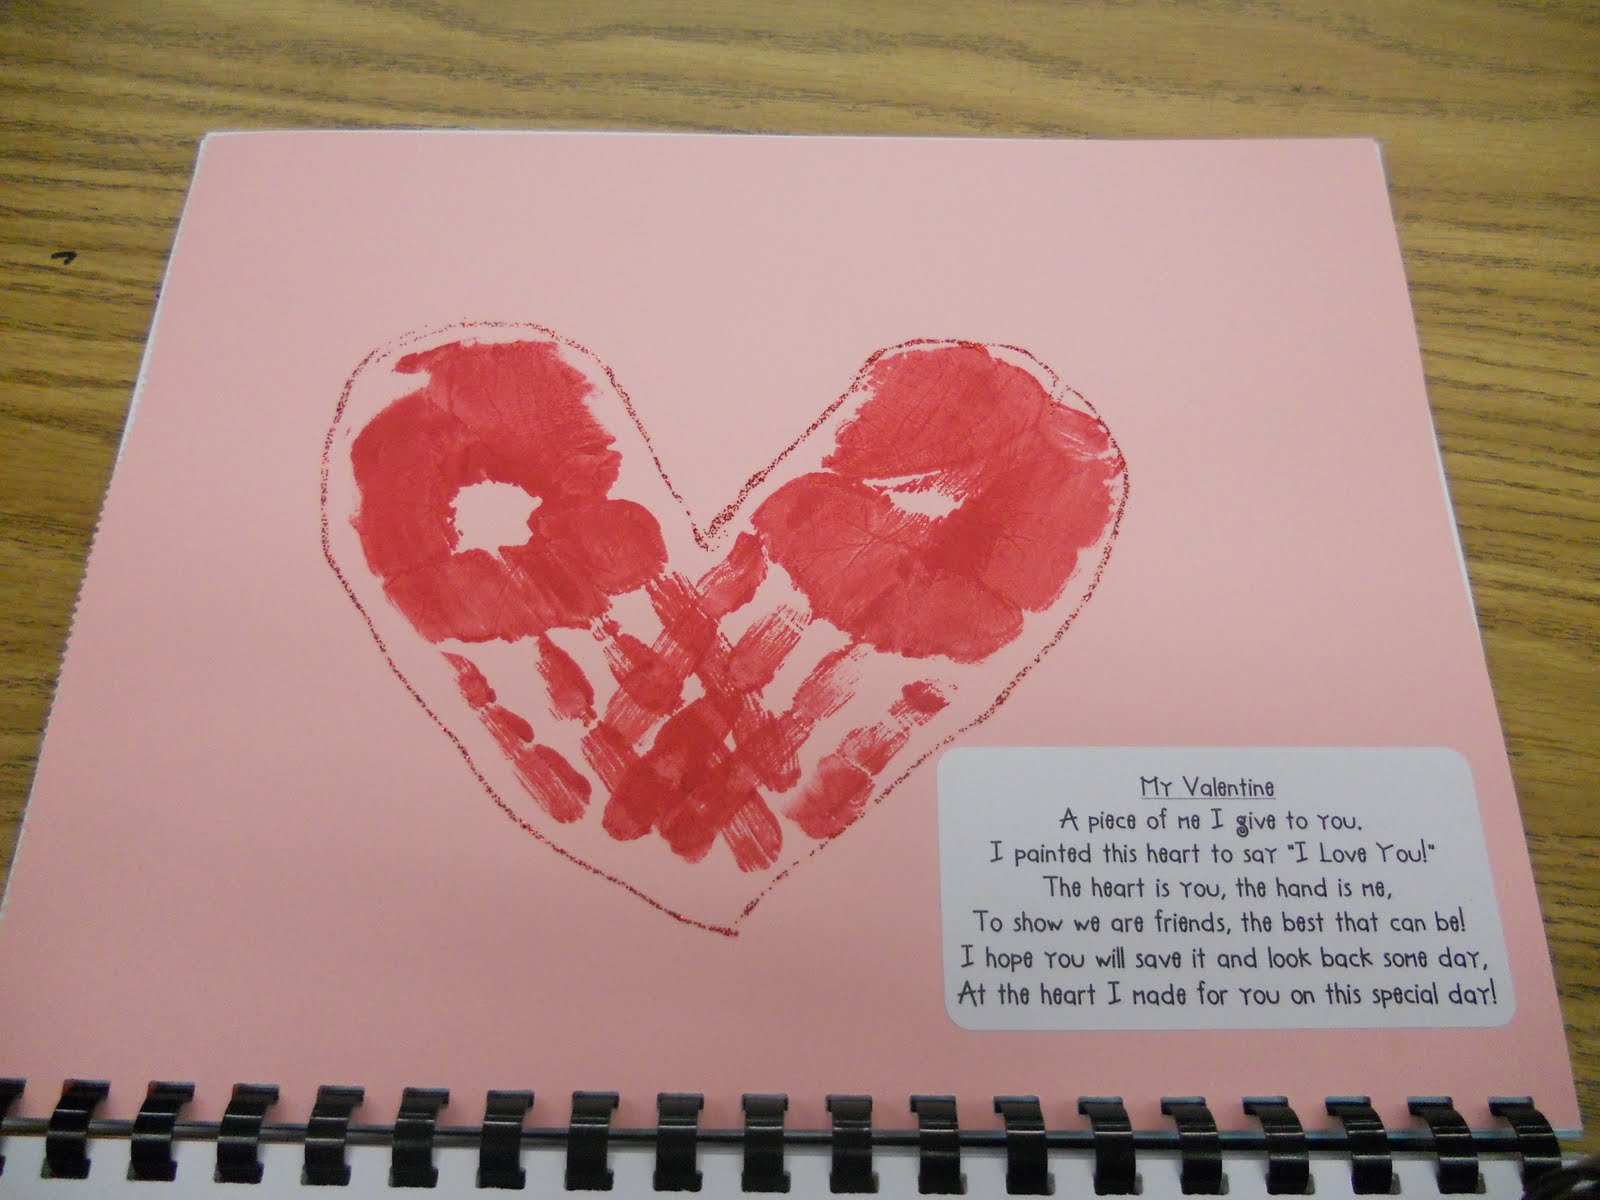 analyzing poetry a valentine edgar Edgar allan poe a valentine by edgar allan poe email share for her this rhyme is penned, whose luminous eyes more poems published by this author.